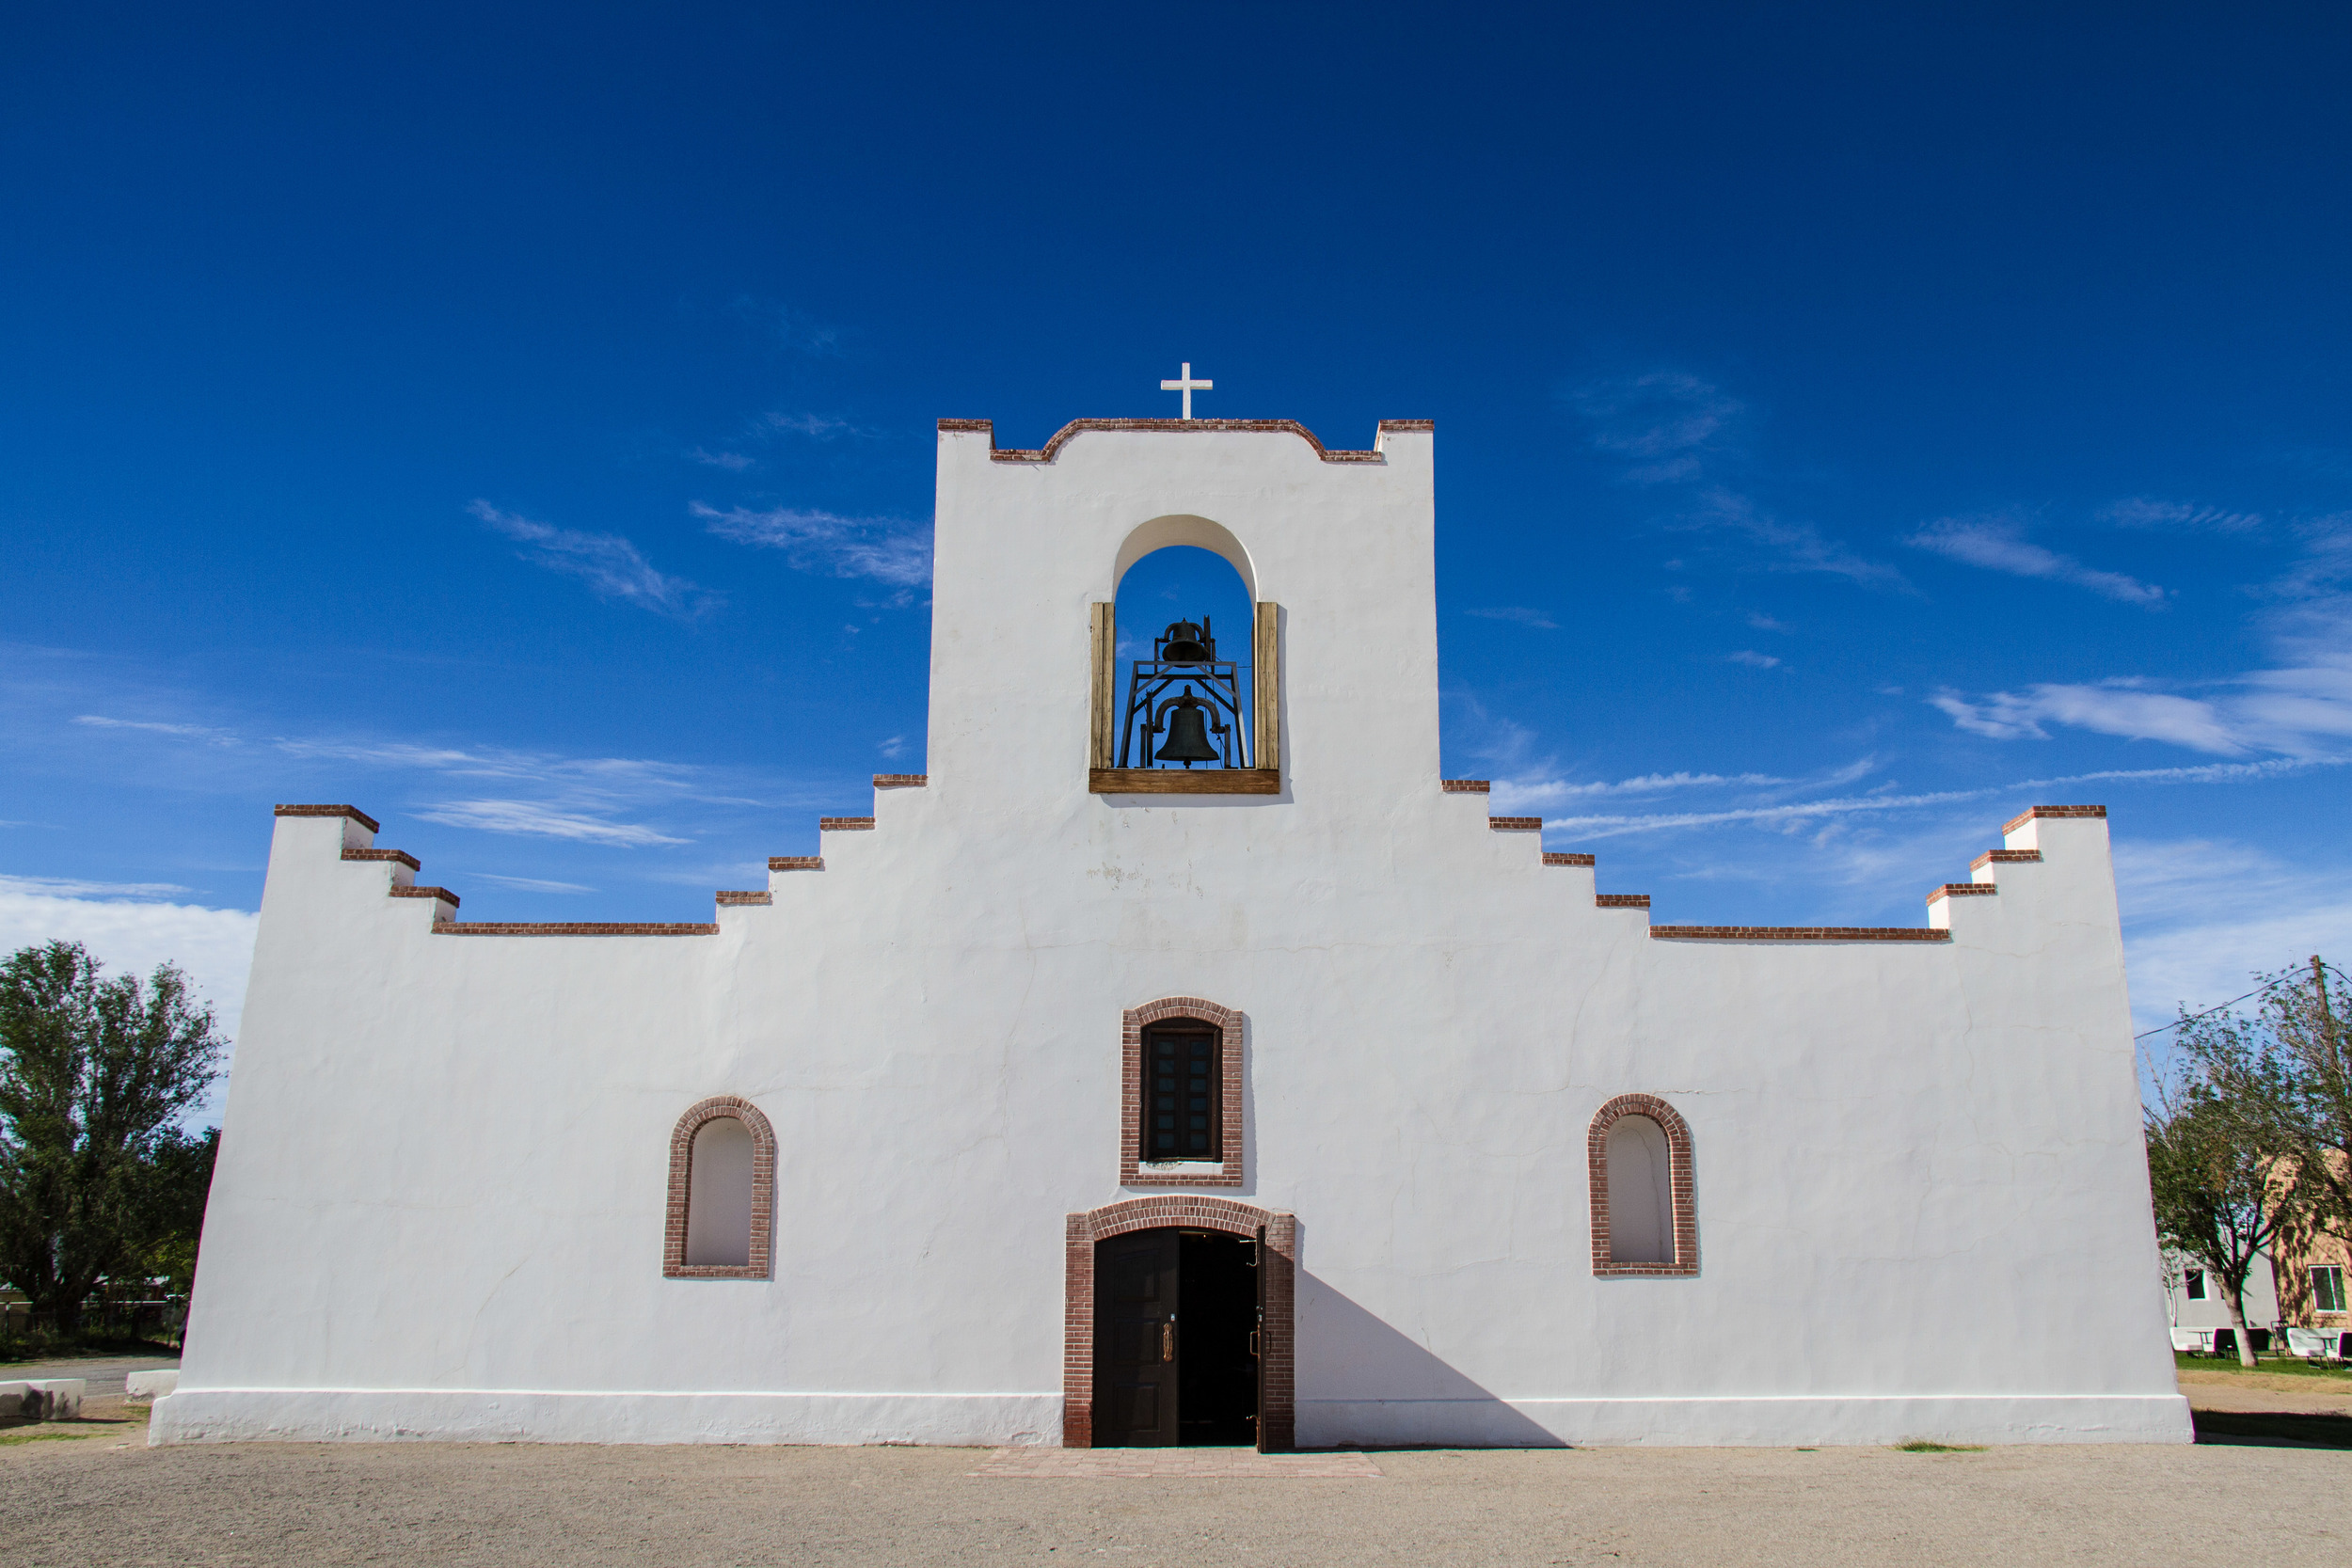 The Socorro Mission along the famous Mission Trail just south of El Paso is one of three mission churches open for visitors to explore the rich history and life in the early 1600's.